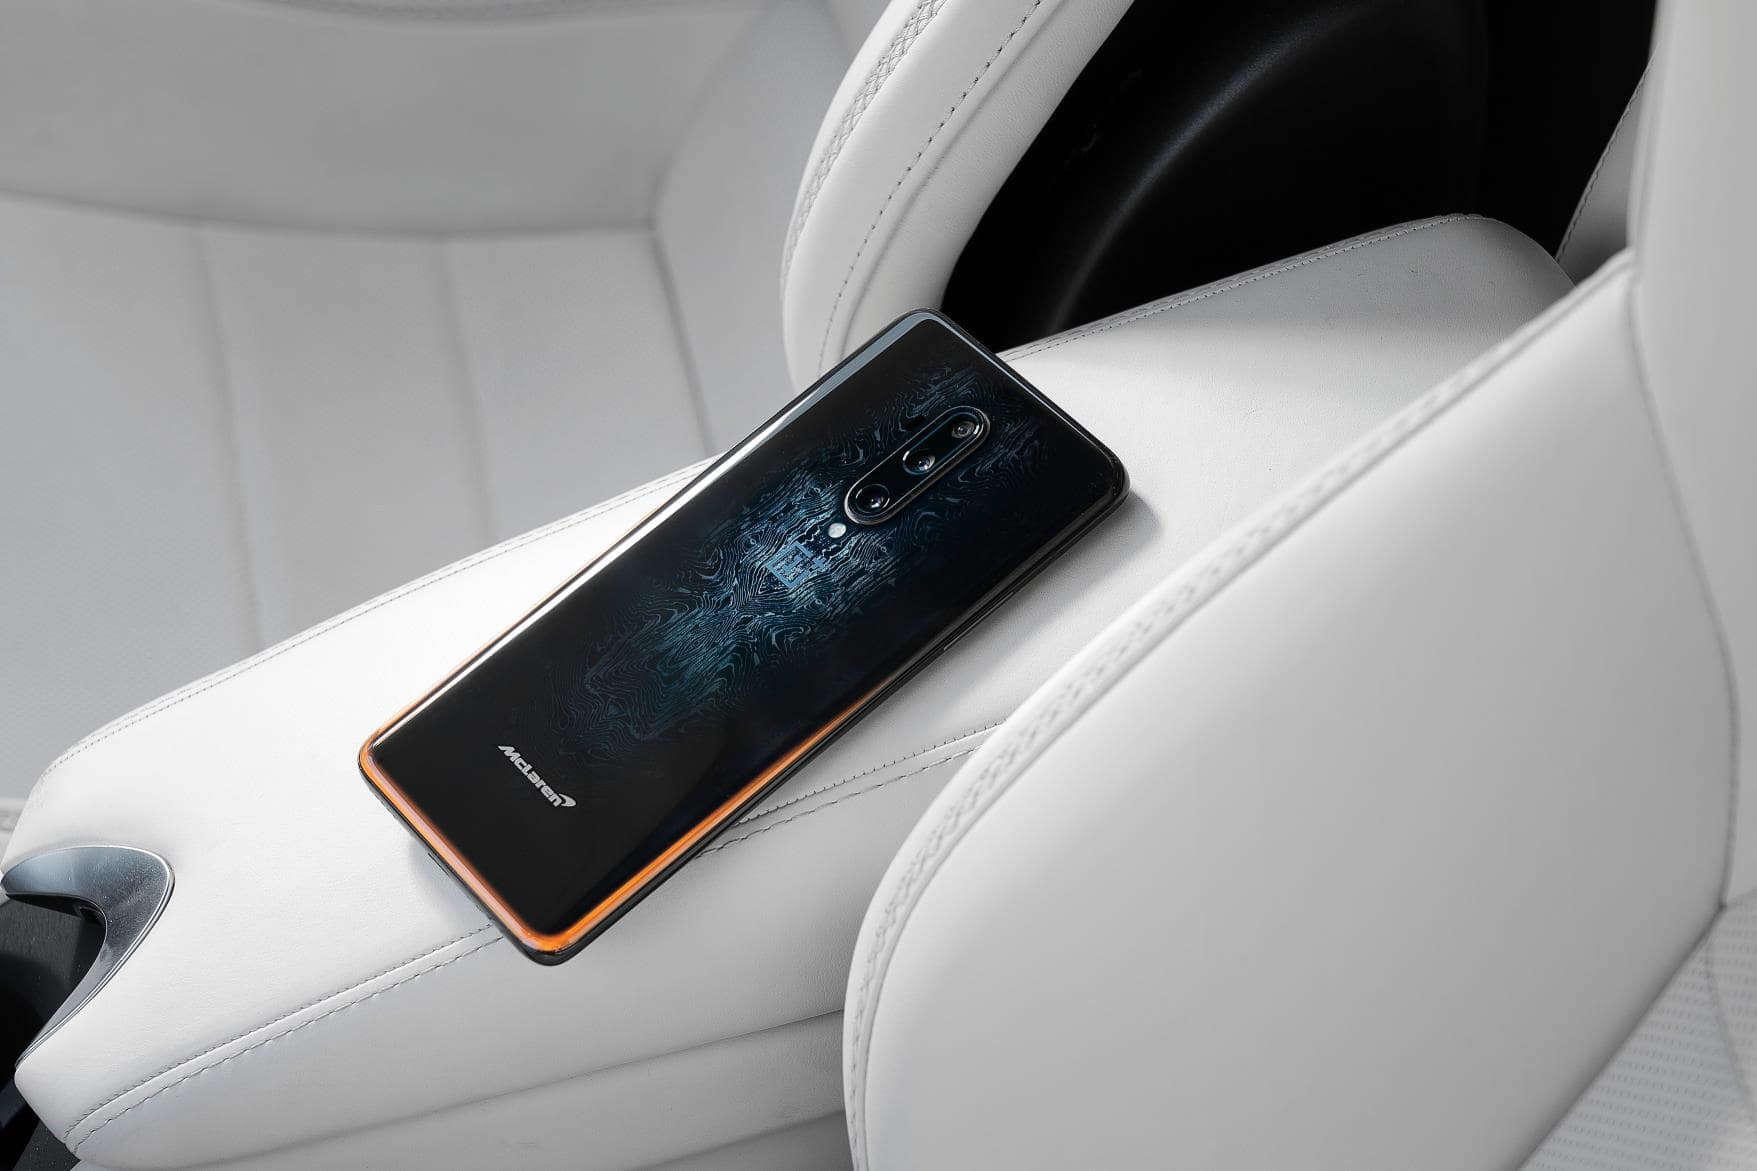 The McLaren You Can 'Probably' Afford: The OnePlus 7T Pro McLaren Edition